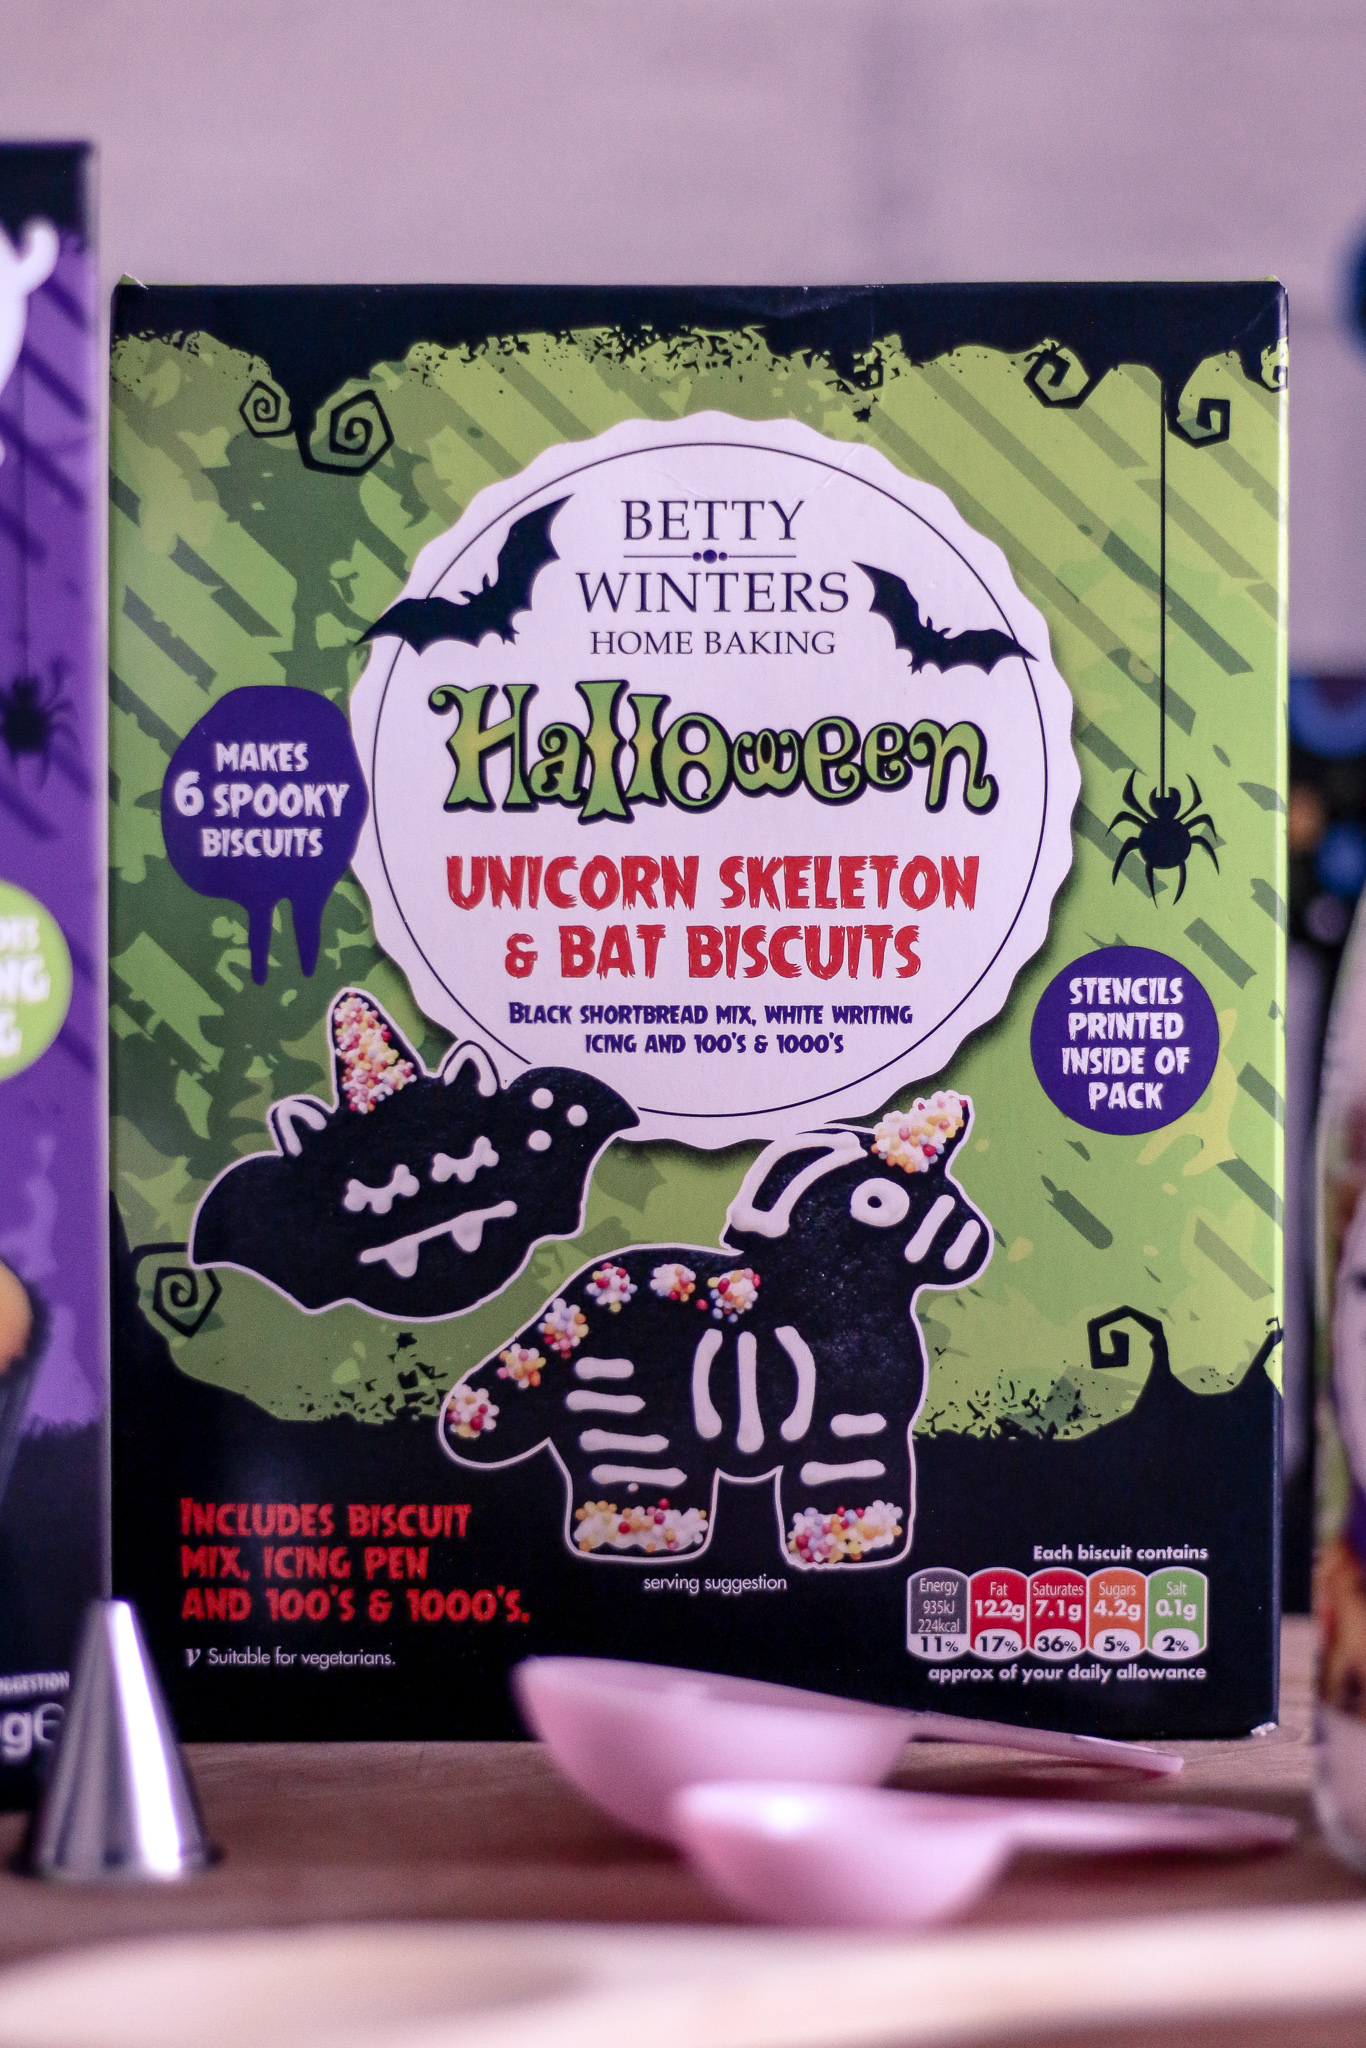 Close up photo of the Betty winters home baking Halloween unicorn skeleton & bat biscuits box